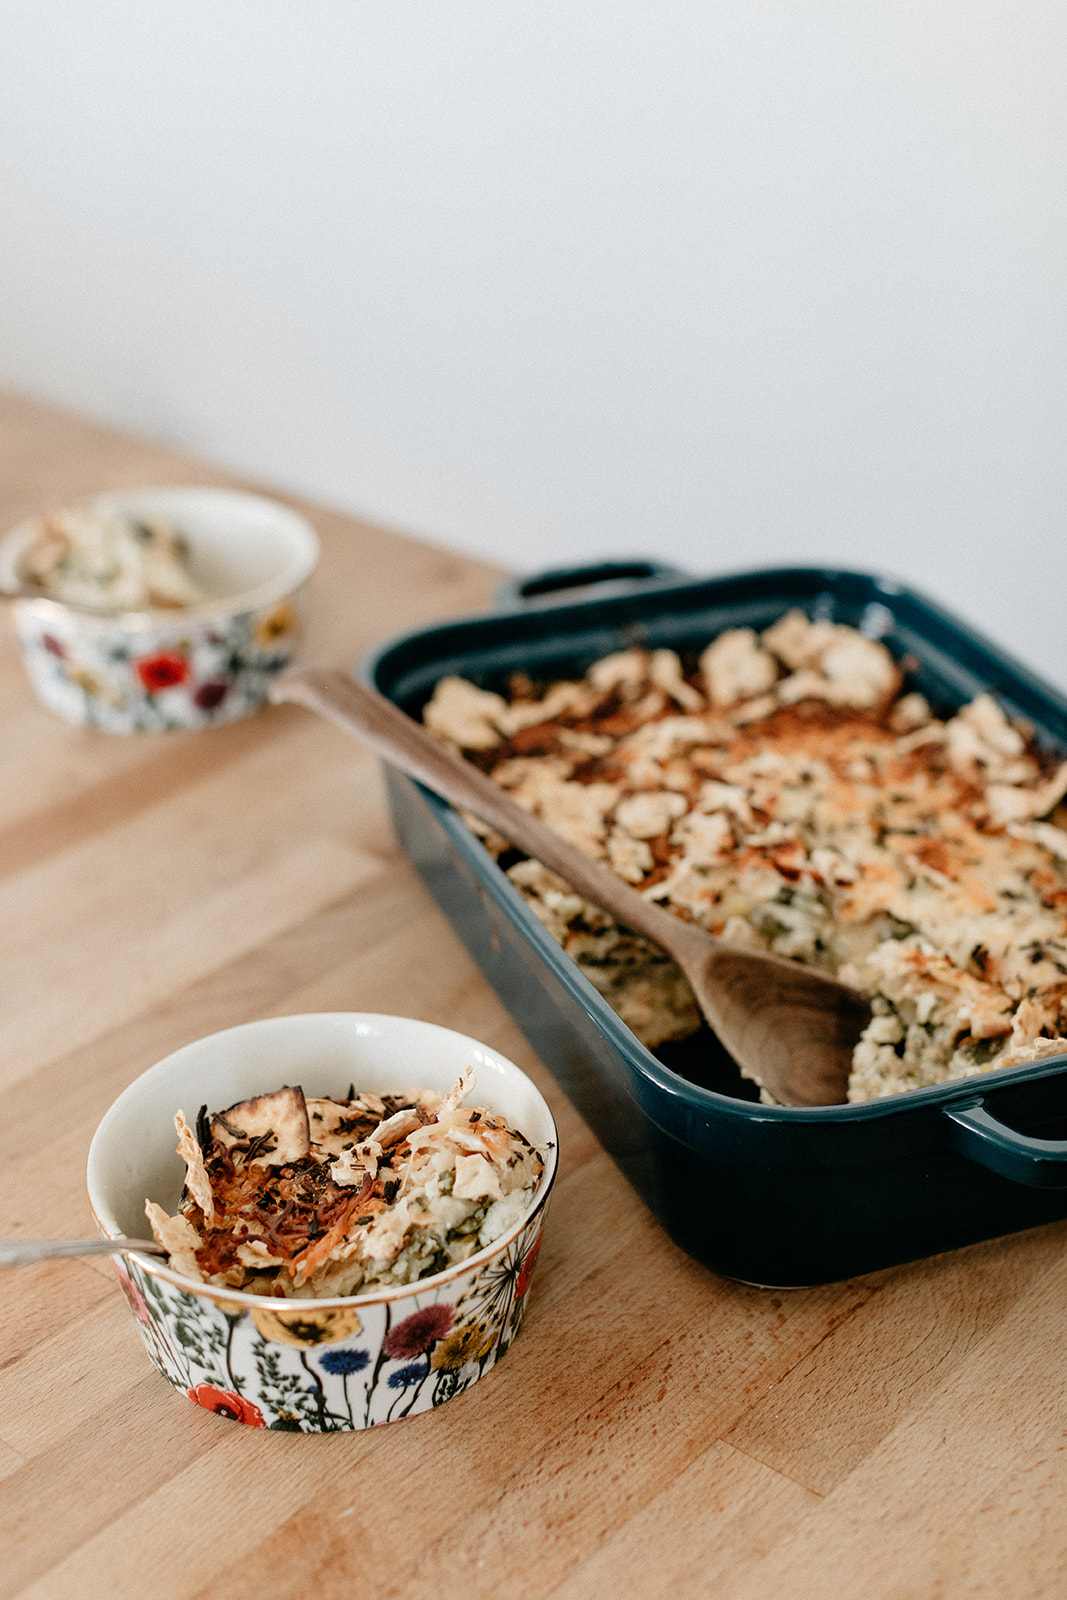 3-6-19-molly-yeh-spring-veggie-white-matzo-lasagna-our-family-27.jpg